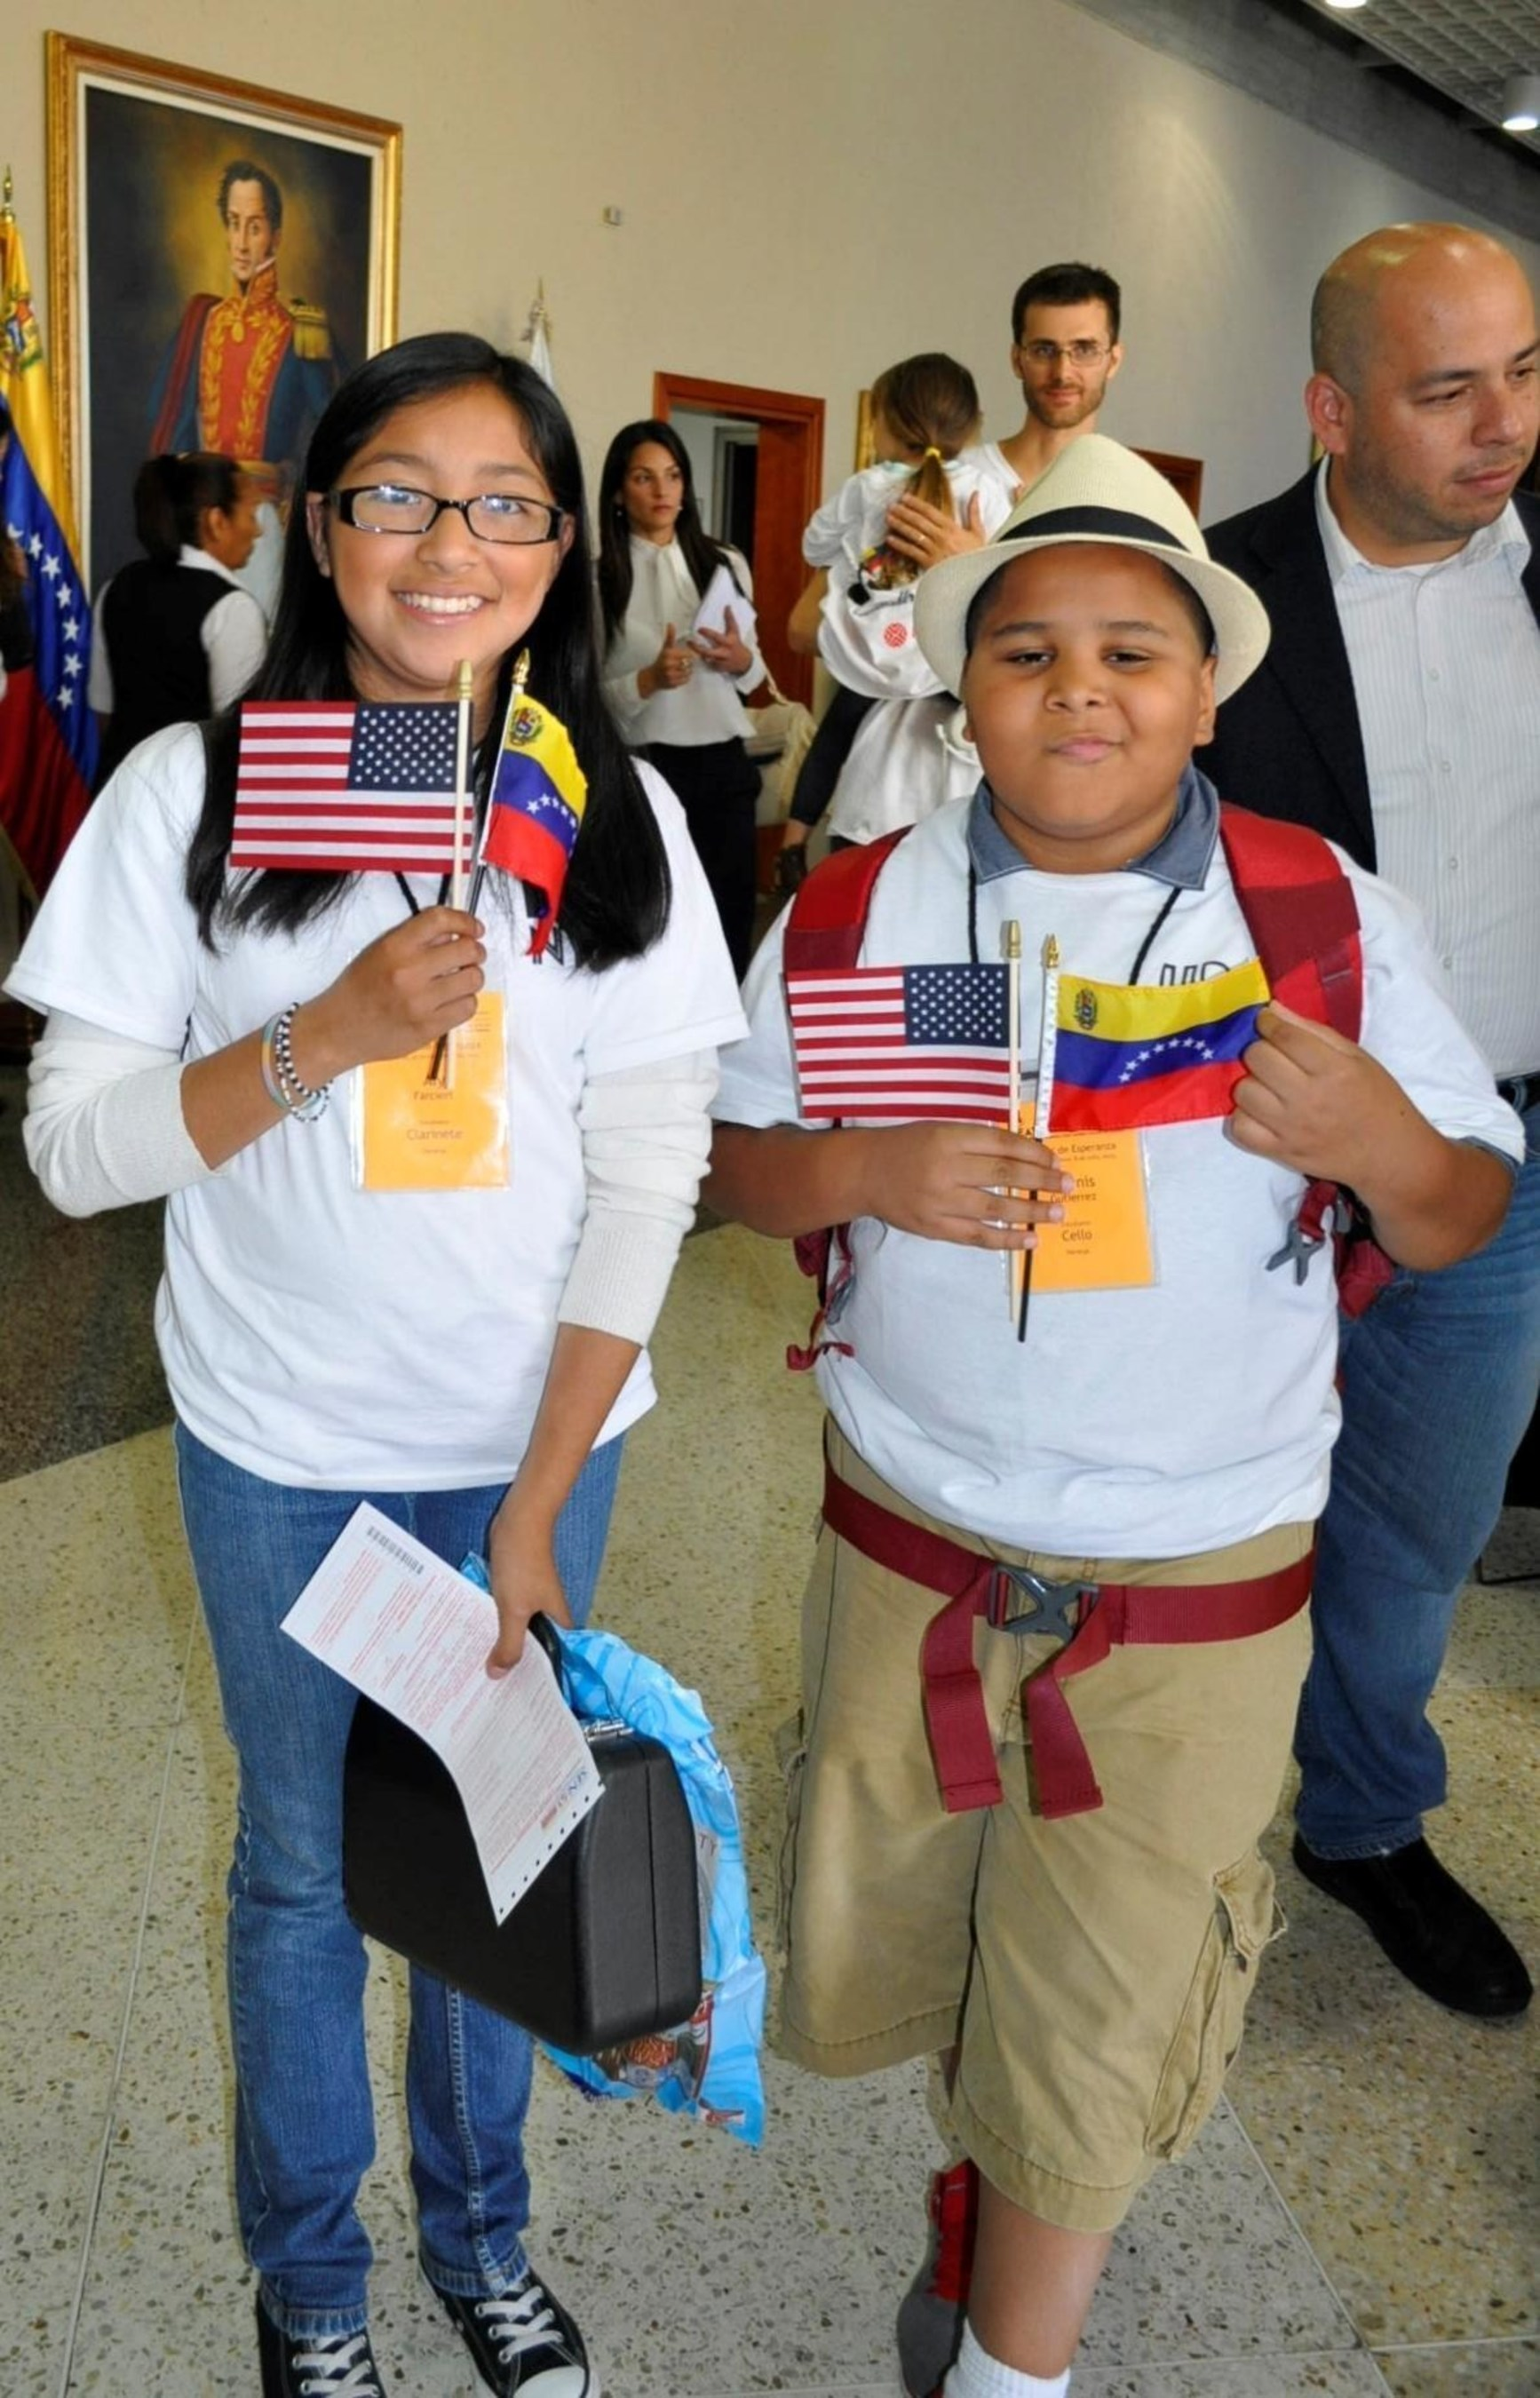 UpBeat NYC students from the South Bronx to attend music classes held by Venezuela's National Orchestra System Simon Bolivar in Caracas, as part of an International Music Education Exchange Program funded in part by CITGO.